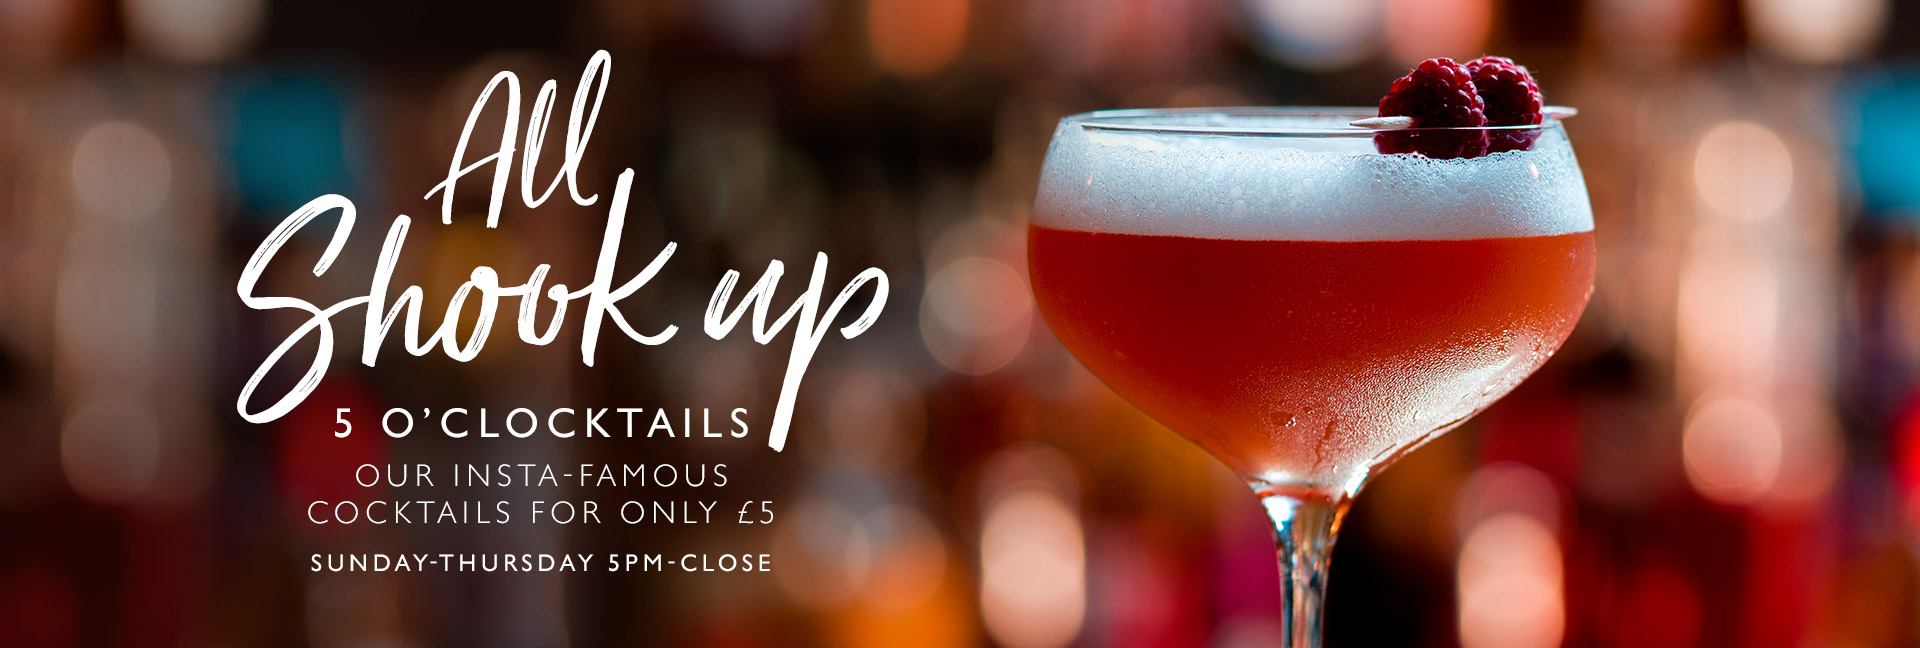 5 O'clocktails at All Bar One Milton Keynes - Book now